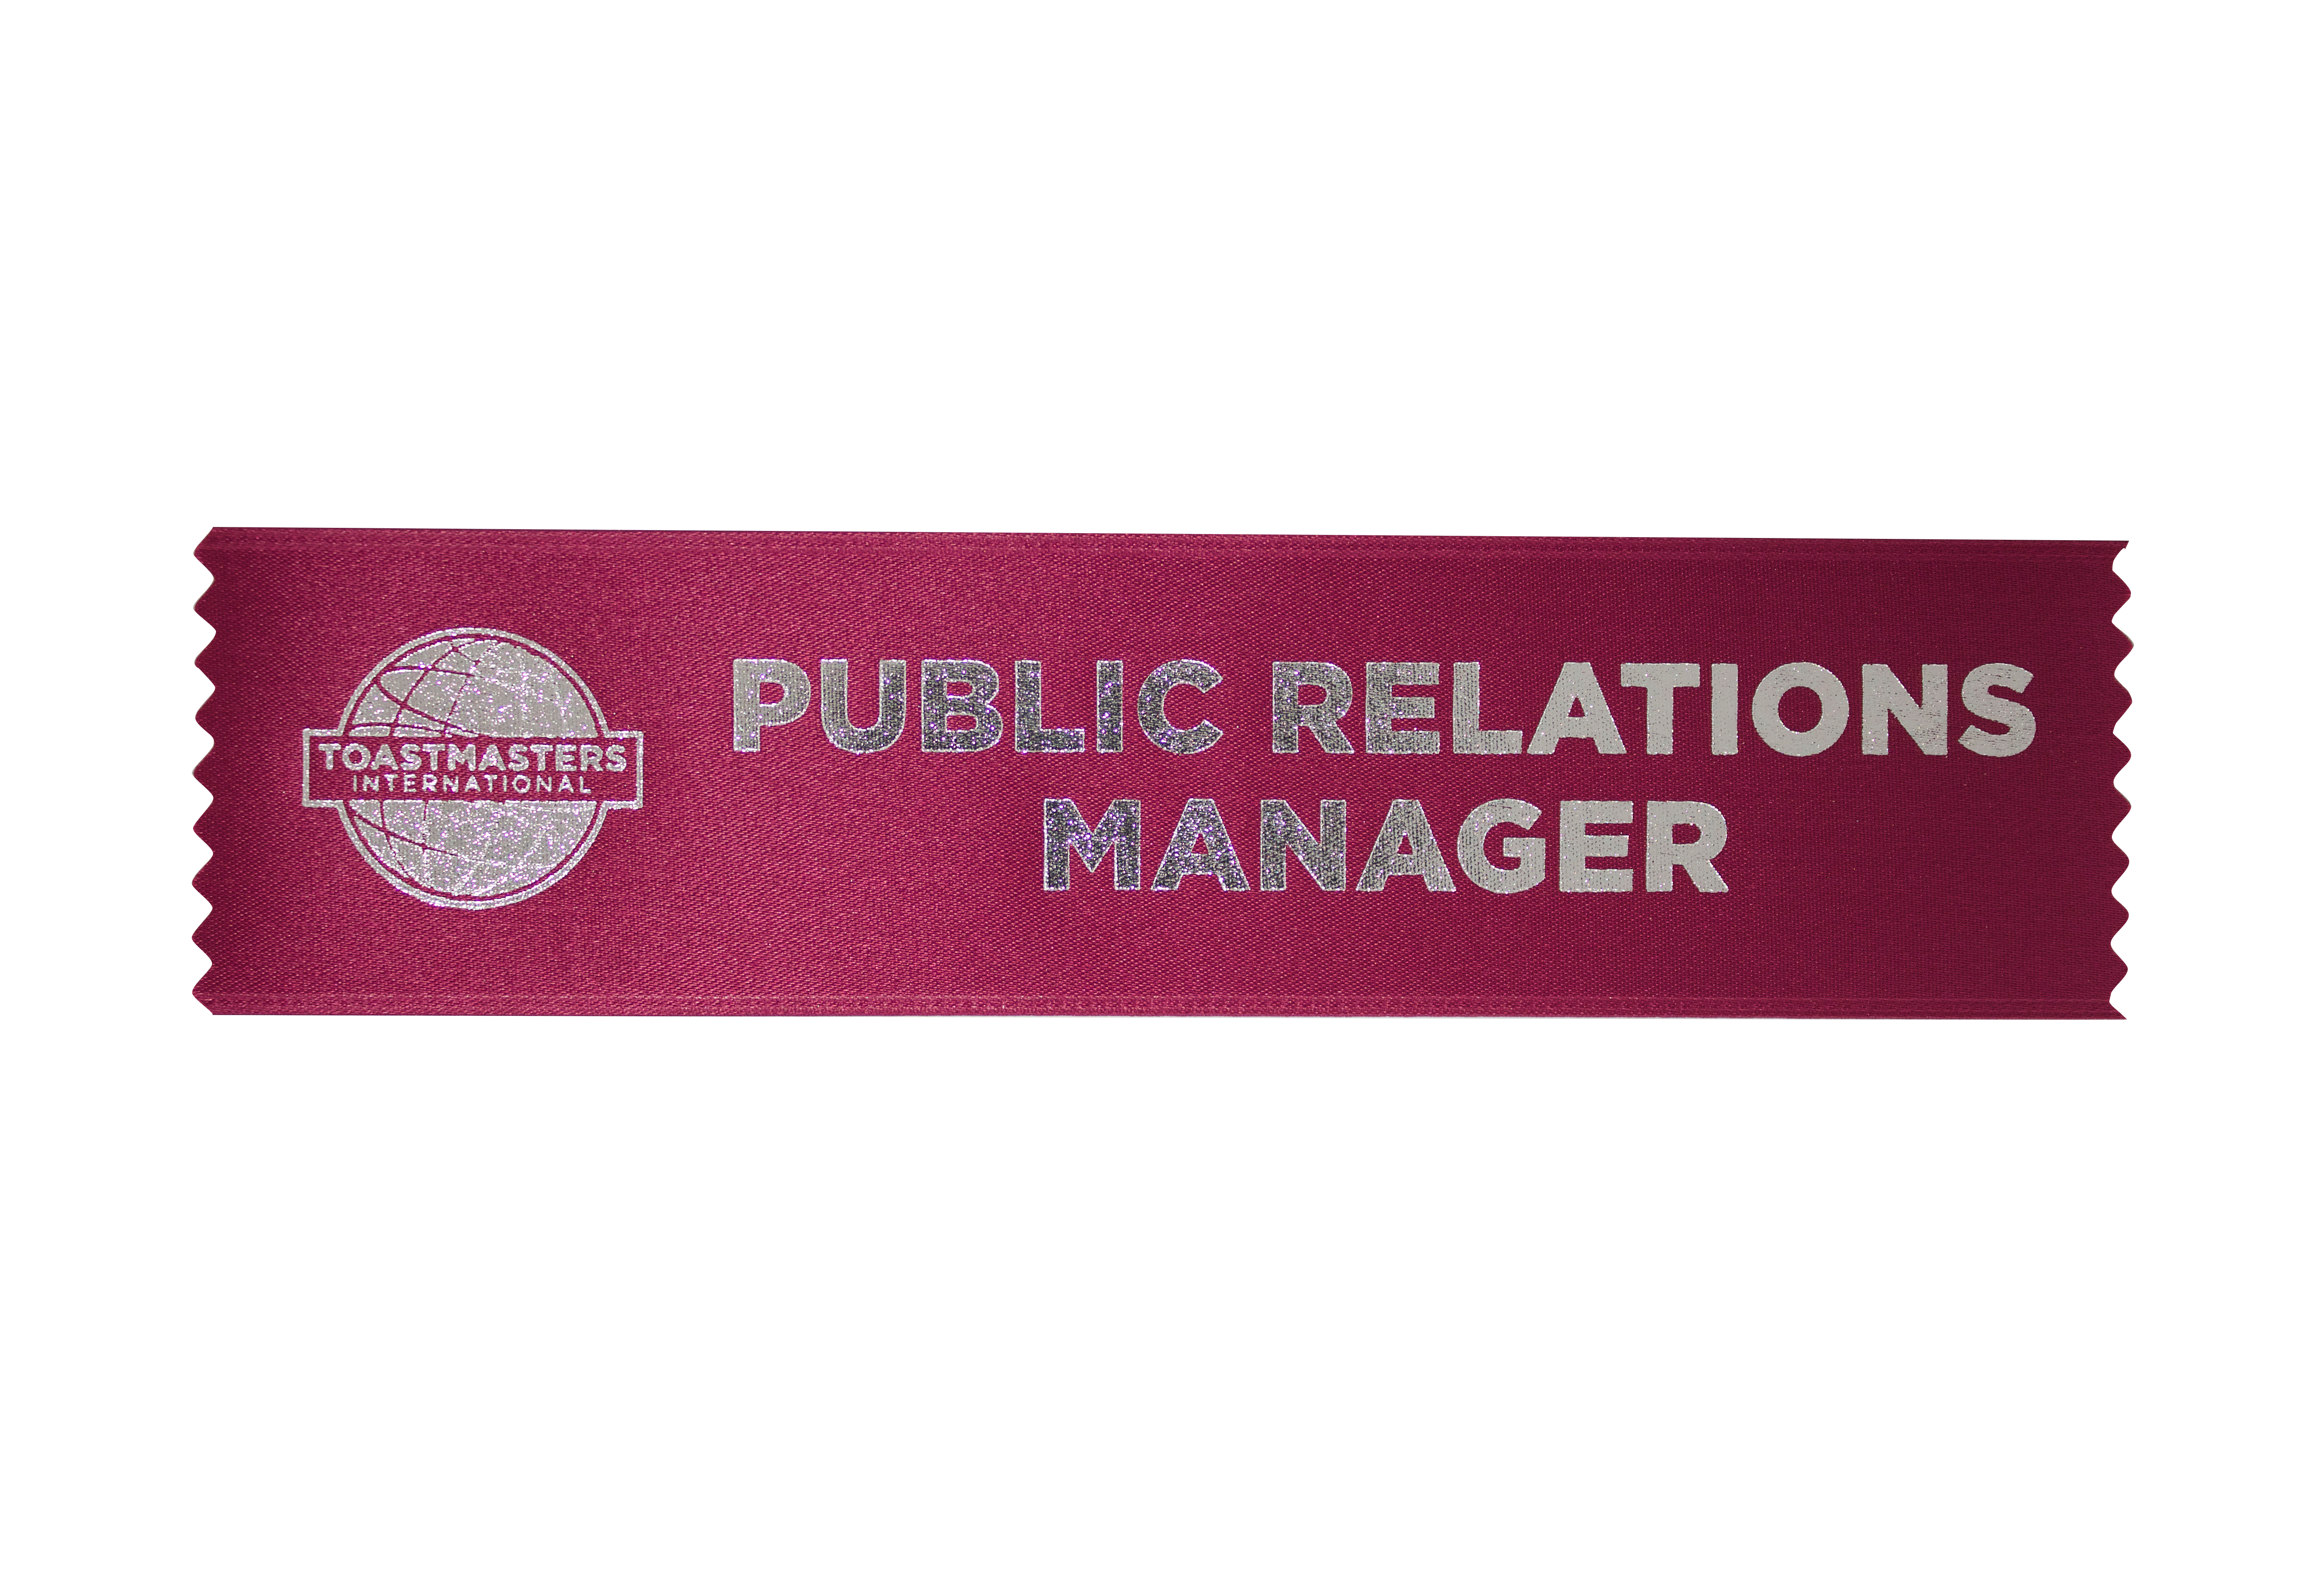 Public Relations Manager Ribbon